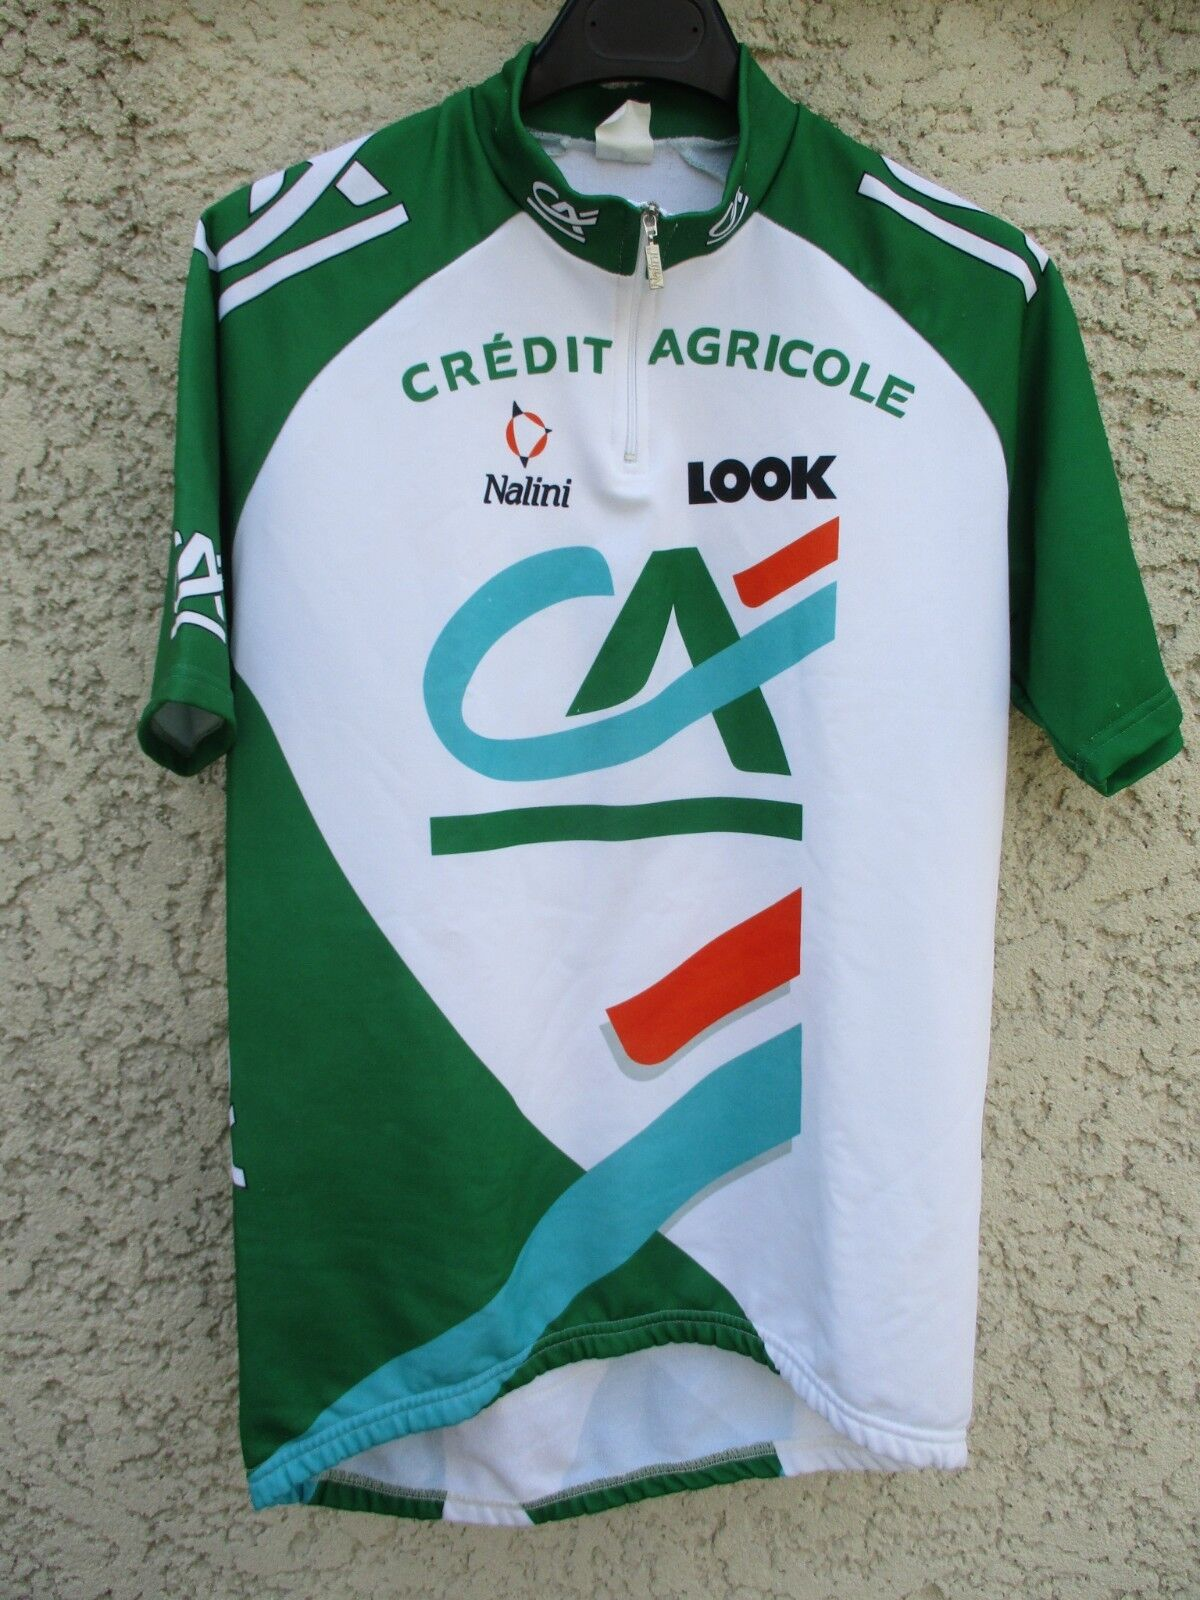 Maillot cycliste CREDIT AGRICOLE Tour de  France 1999 Nalini Look jersey shirt L  offering 100%